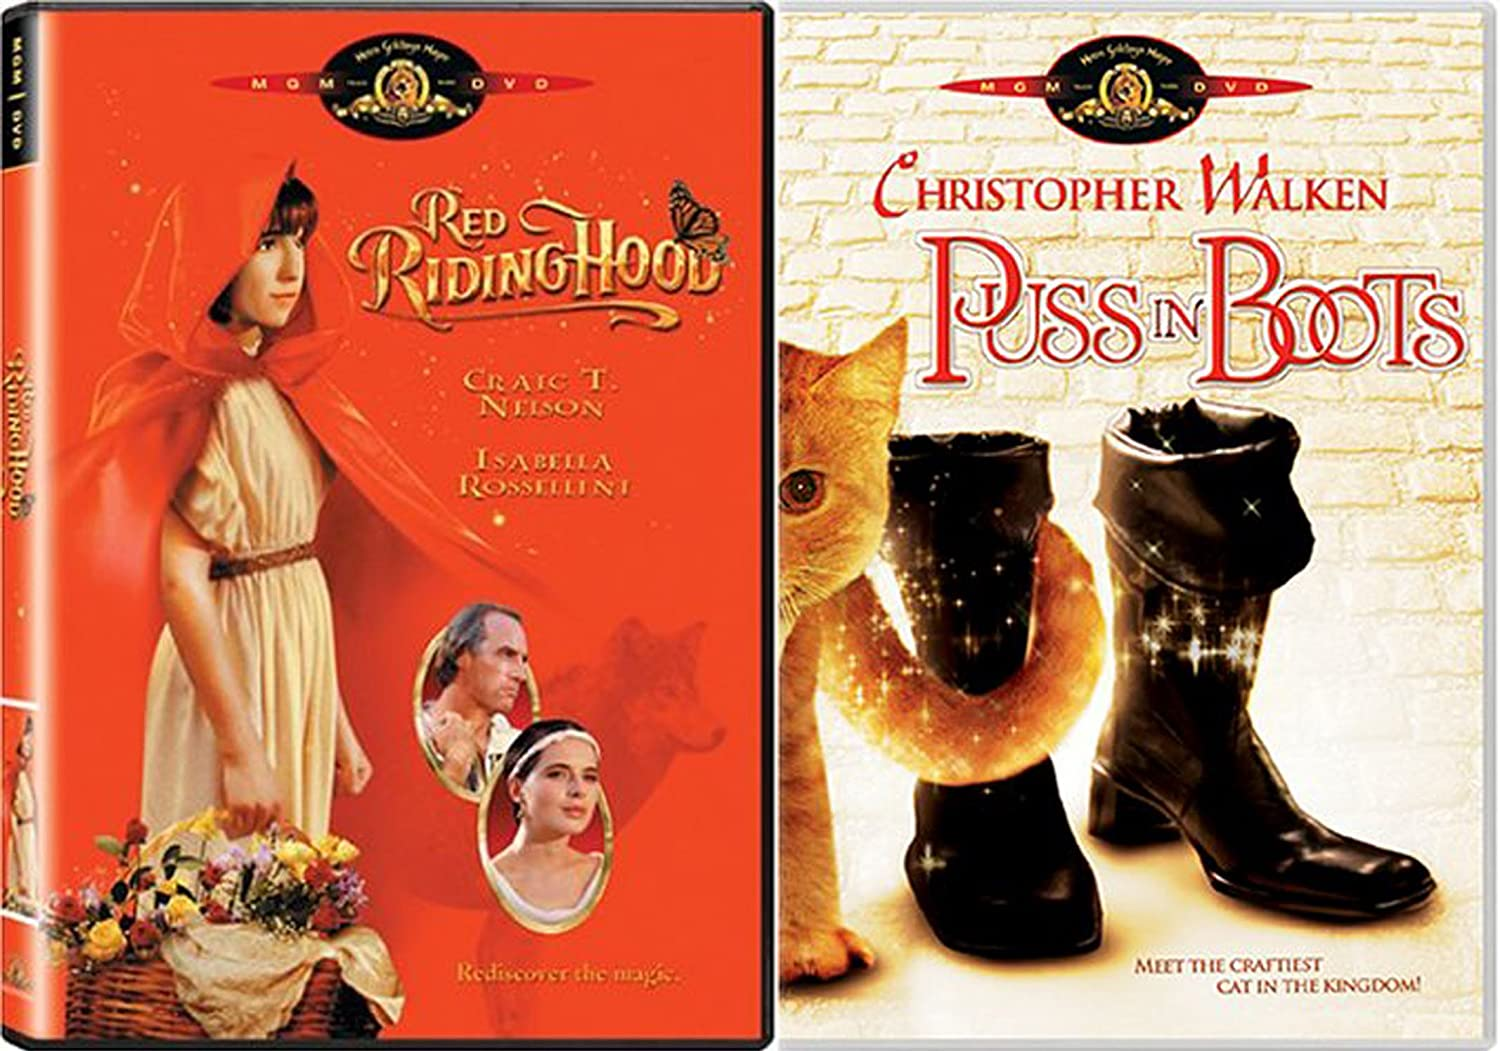 Amazon Com Fairy Tale Collection Red Riding Hood Puss In Boots 2 Dvd Movie Bundle Craig T Nelson Isabella Rossellini Christopher Walken Adam Brooks Adrian Marner Movies Tv